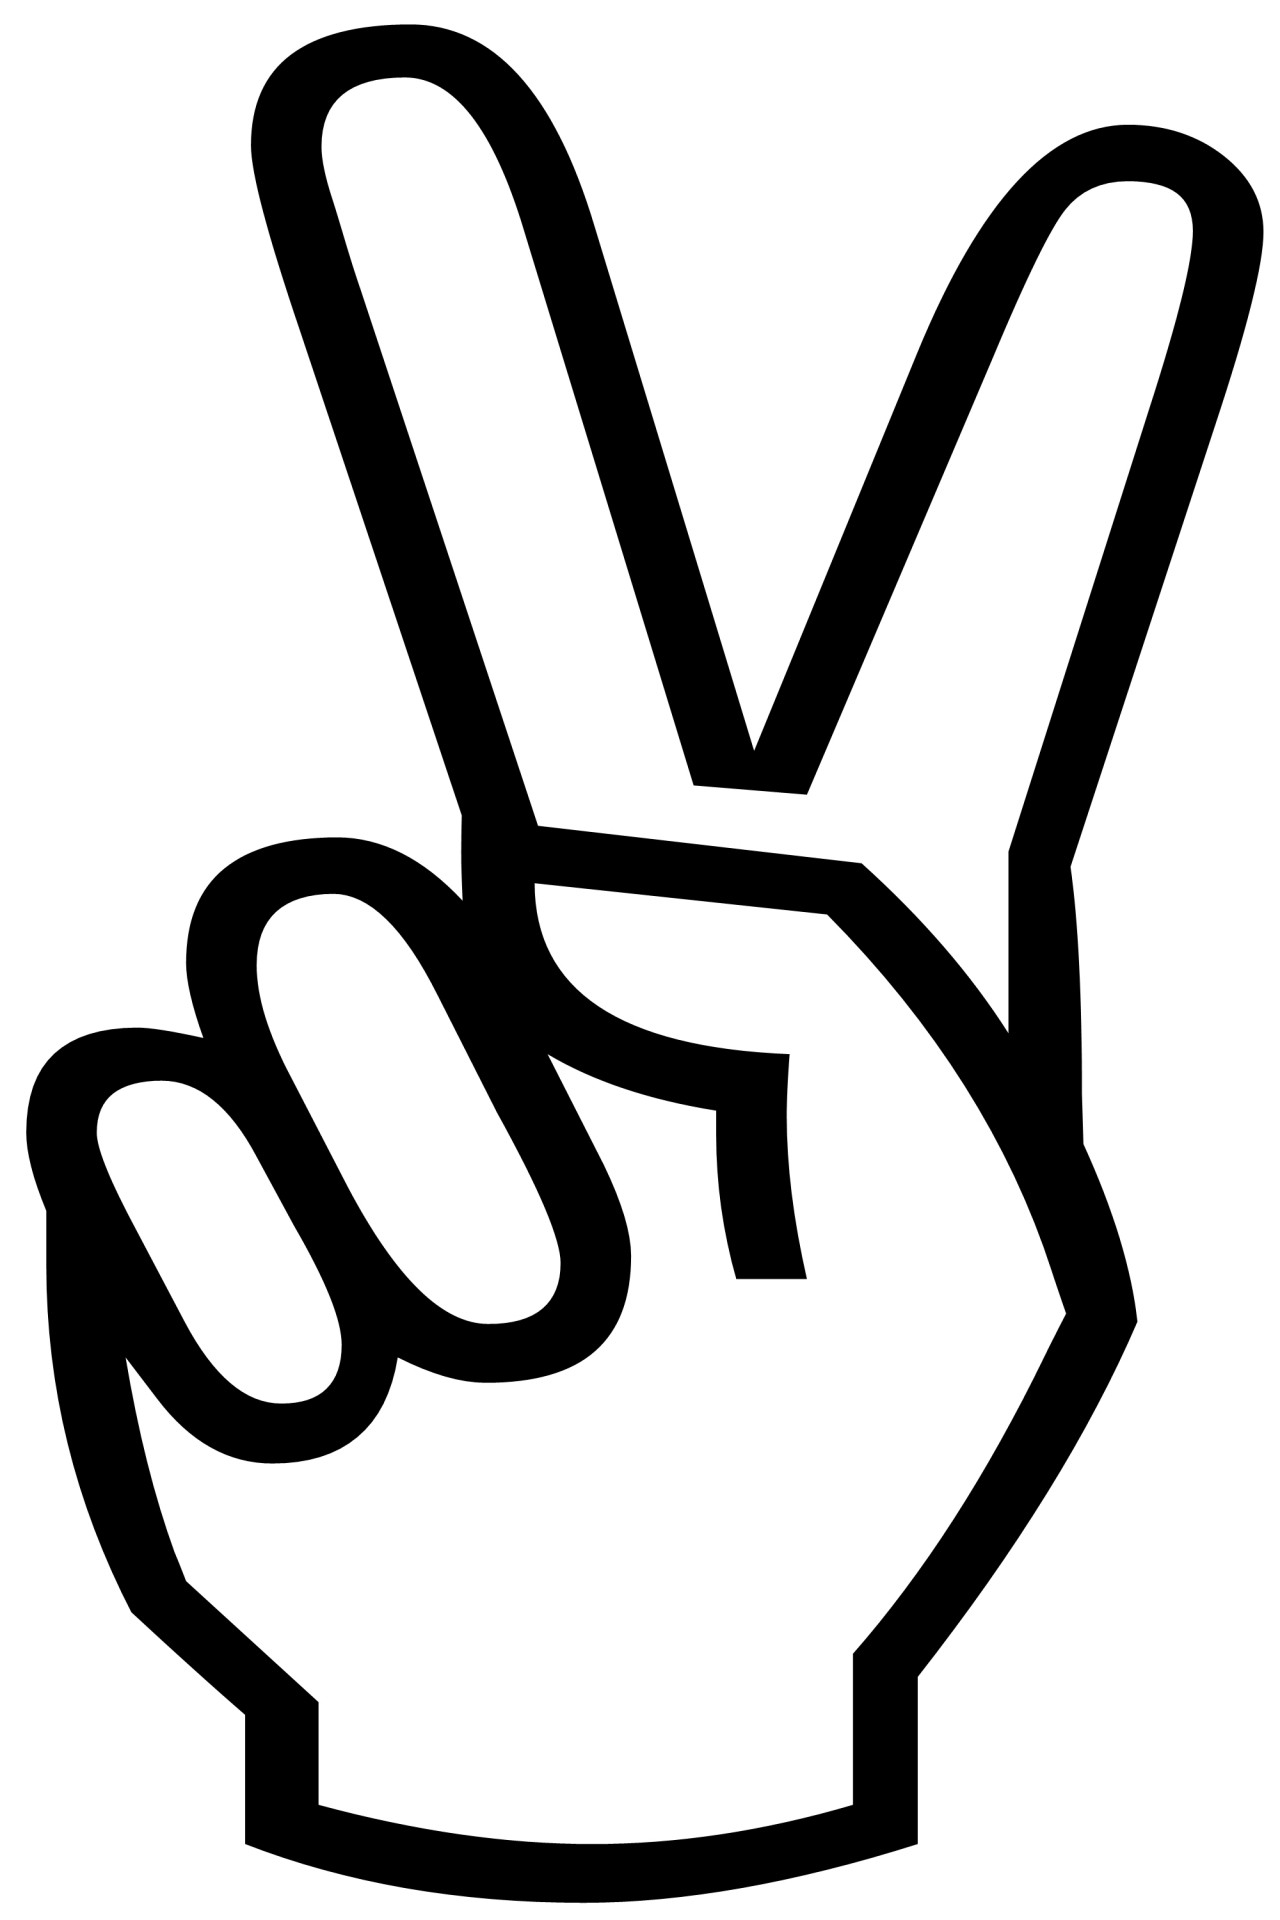 Peace Sign Silhouette At Getdrawings Free For Personal Use